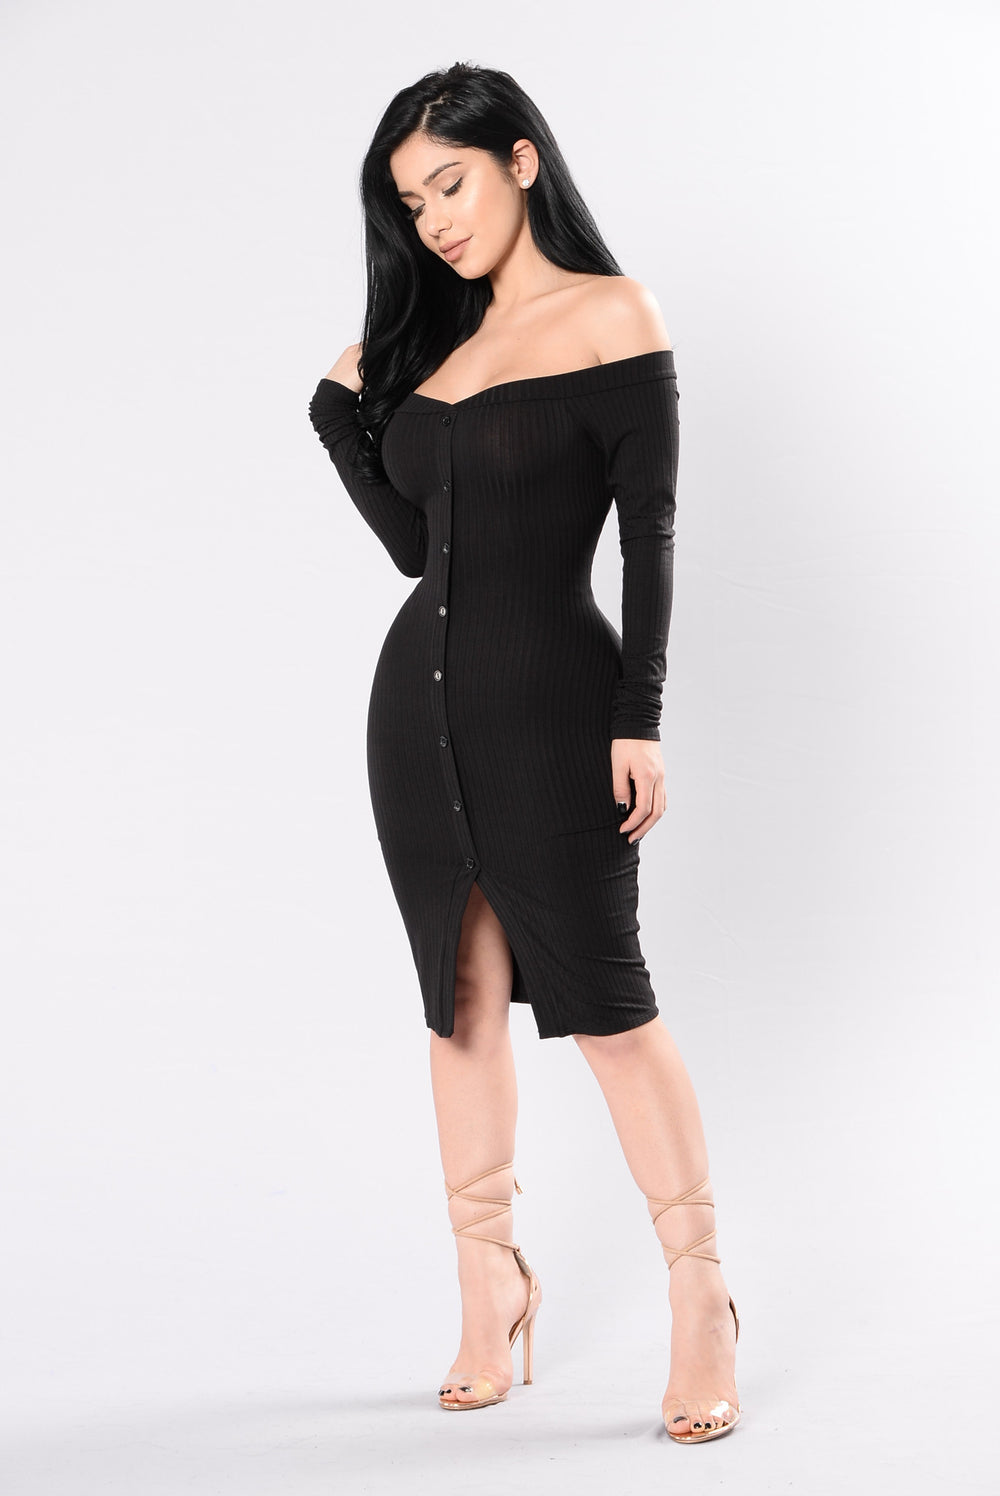 One Moment Dress - Black